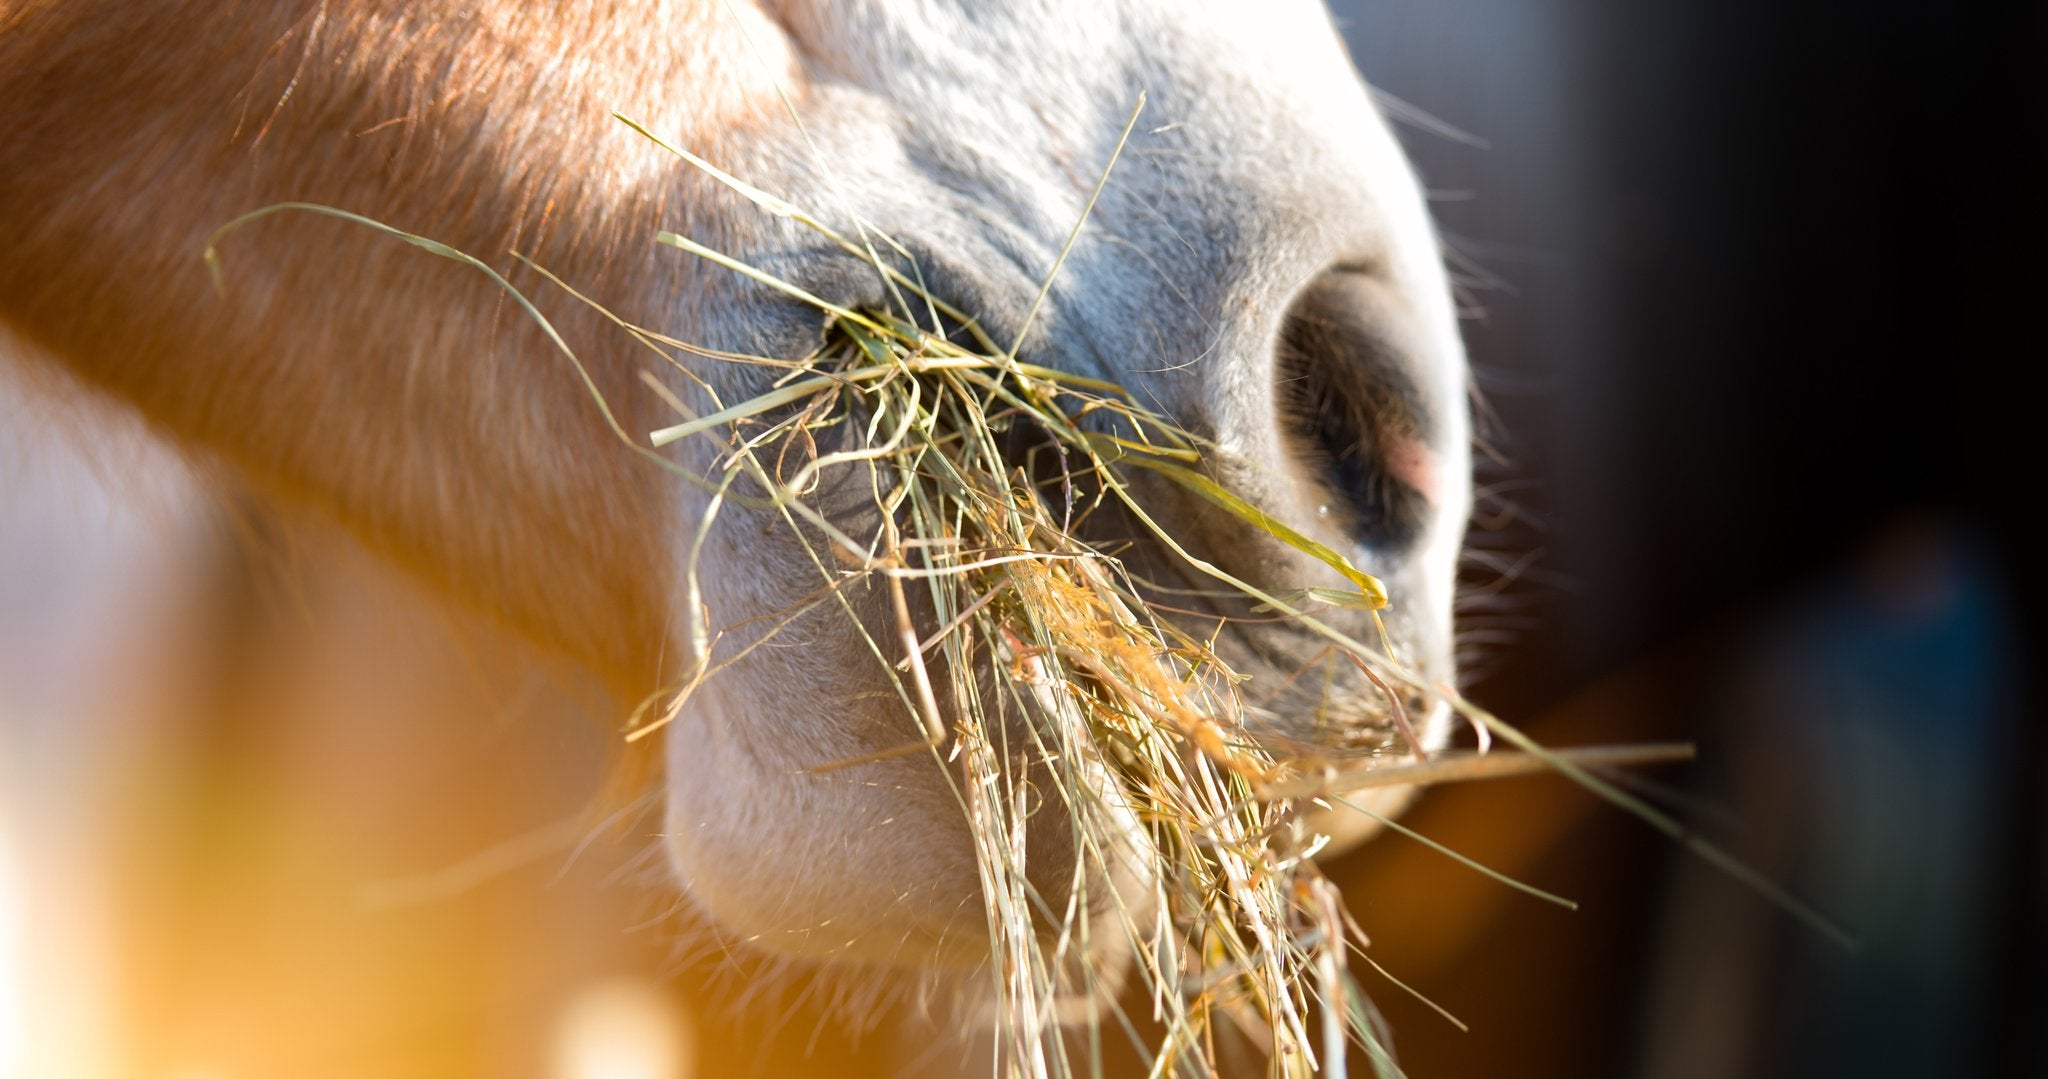 Mmmm! The sweet smell of steamed hay!